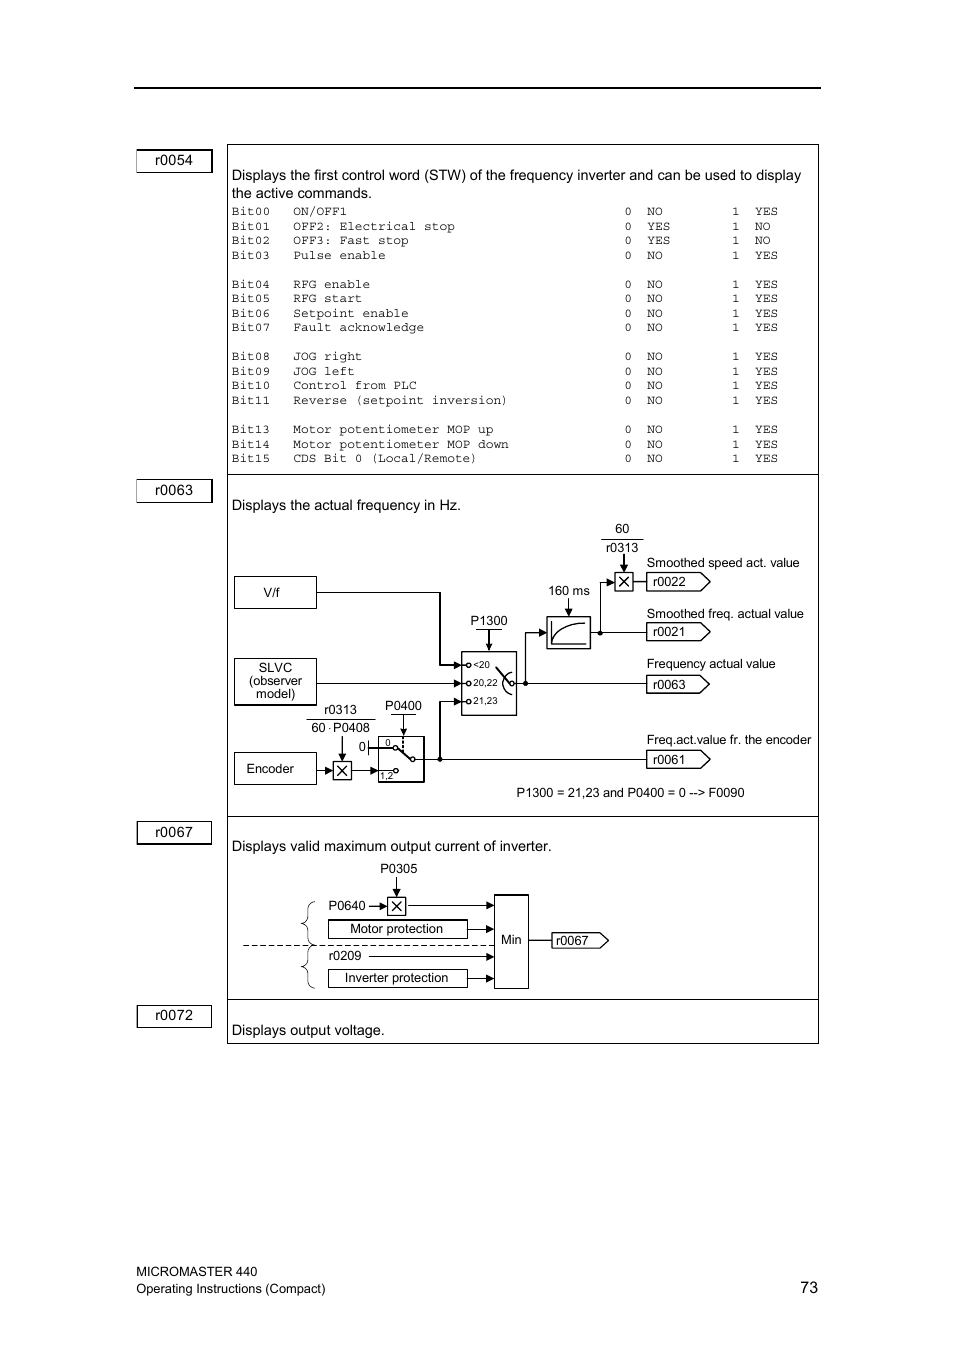 Siemens Inverter Wiring Diagram Free Download Micromaster 440 Control Best Image 2018 Typical Motor Diagrams At